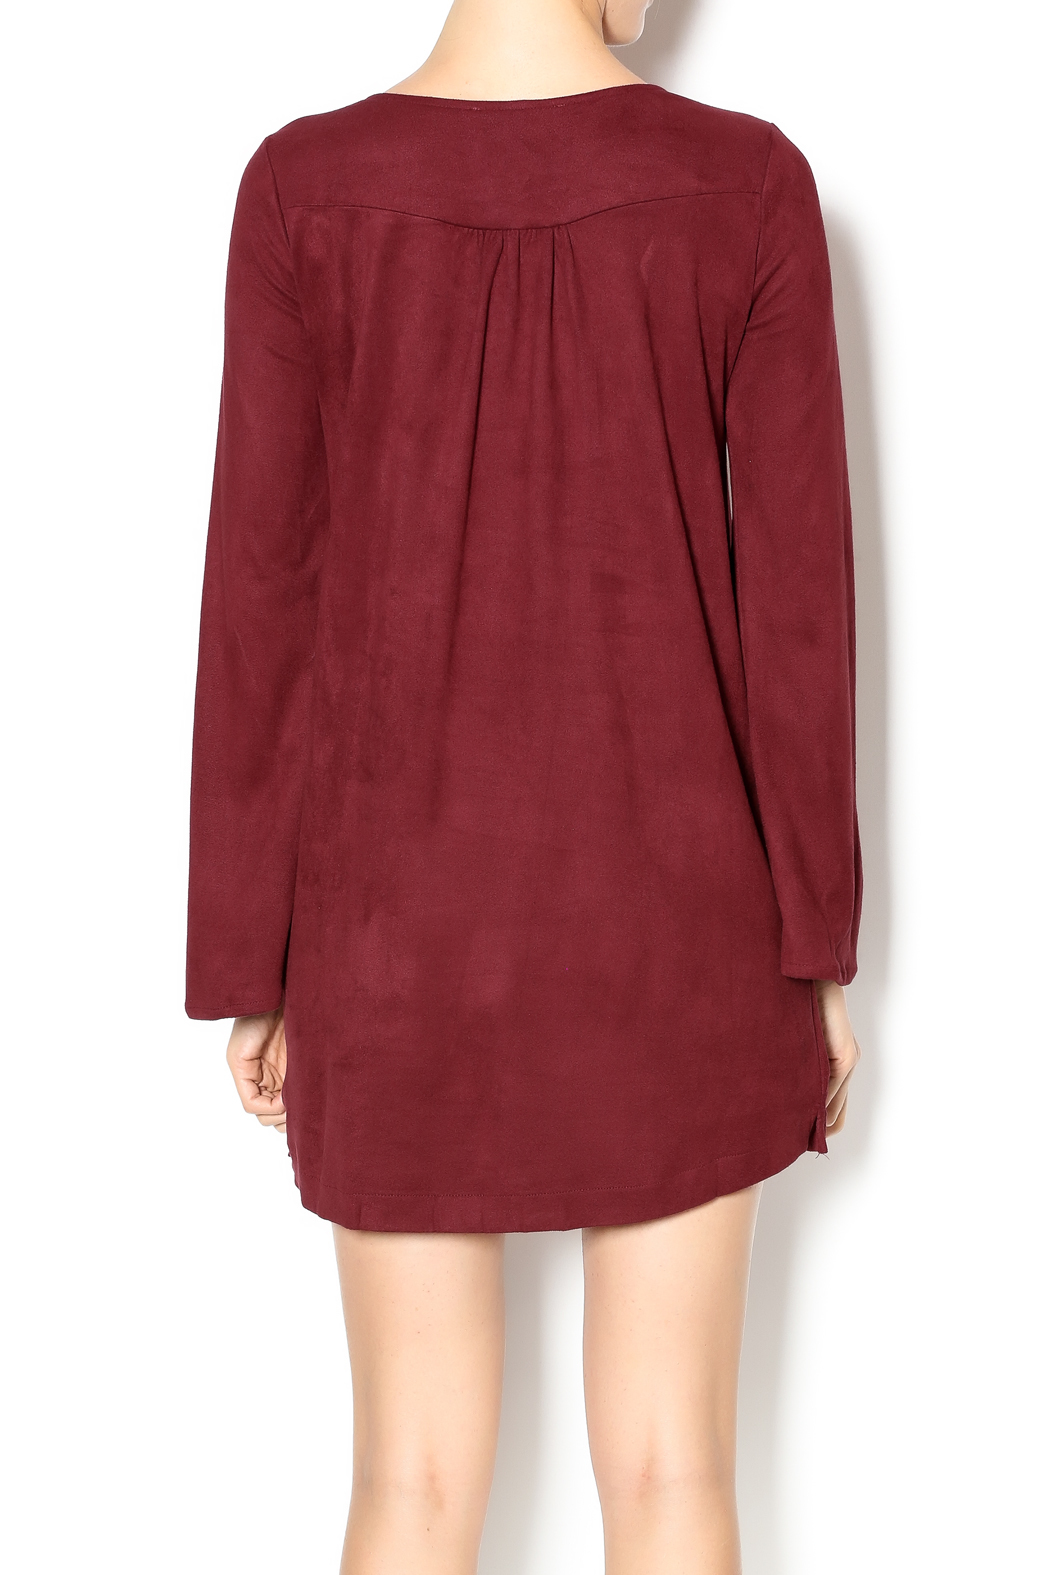 Olivaceous Faux Suede Lace-Up Dress - Back Cropped Image